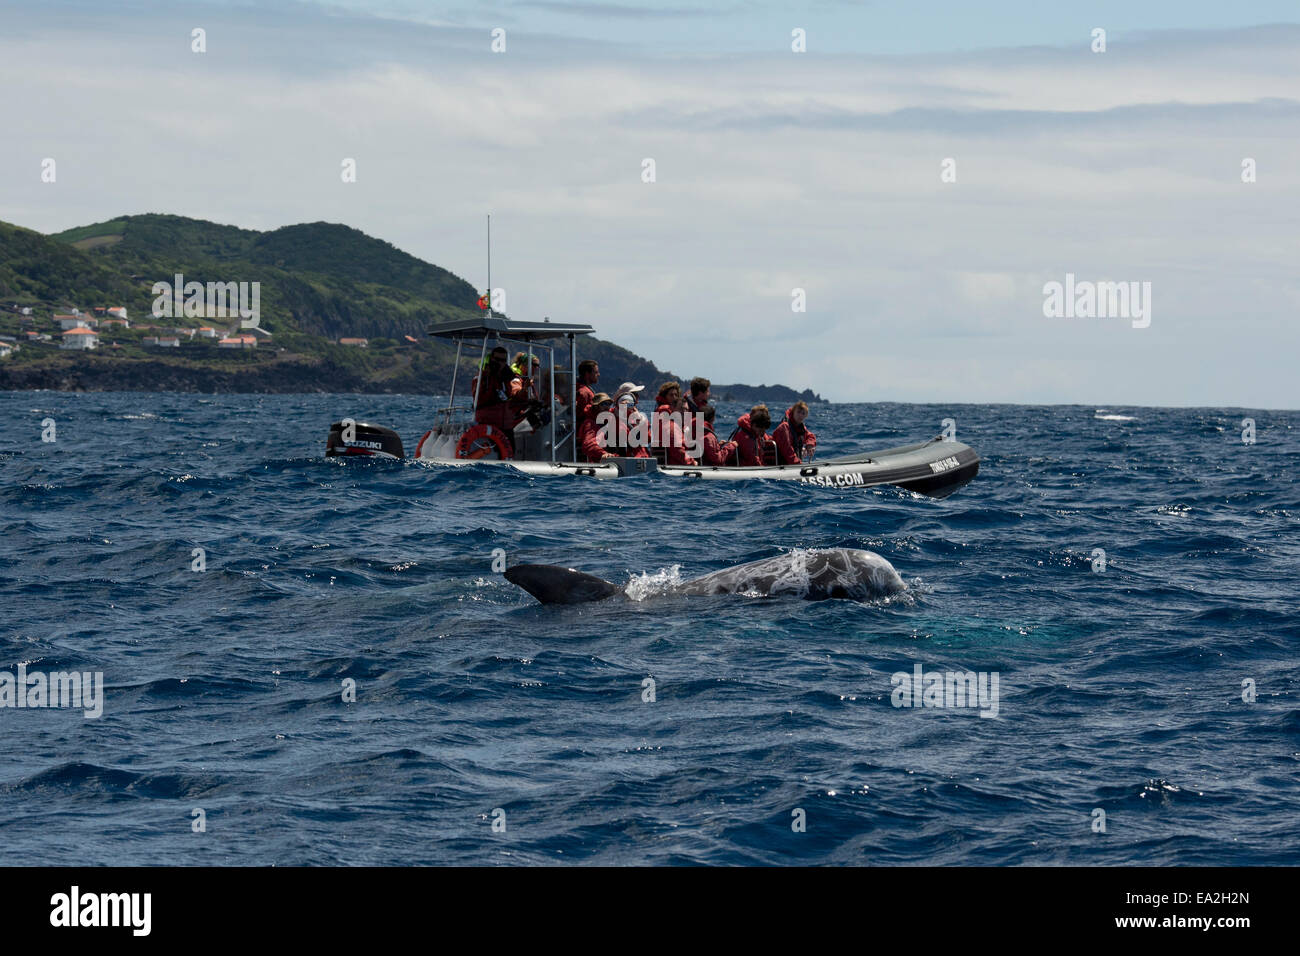 Tourists watch a Risso's Dolphin (Grampus griseus) during a Whale-Watching trip. Azores, Atlantic Ocean - Stock Image